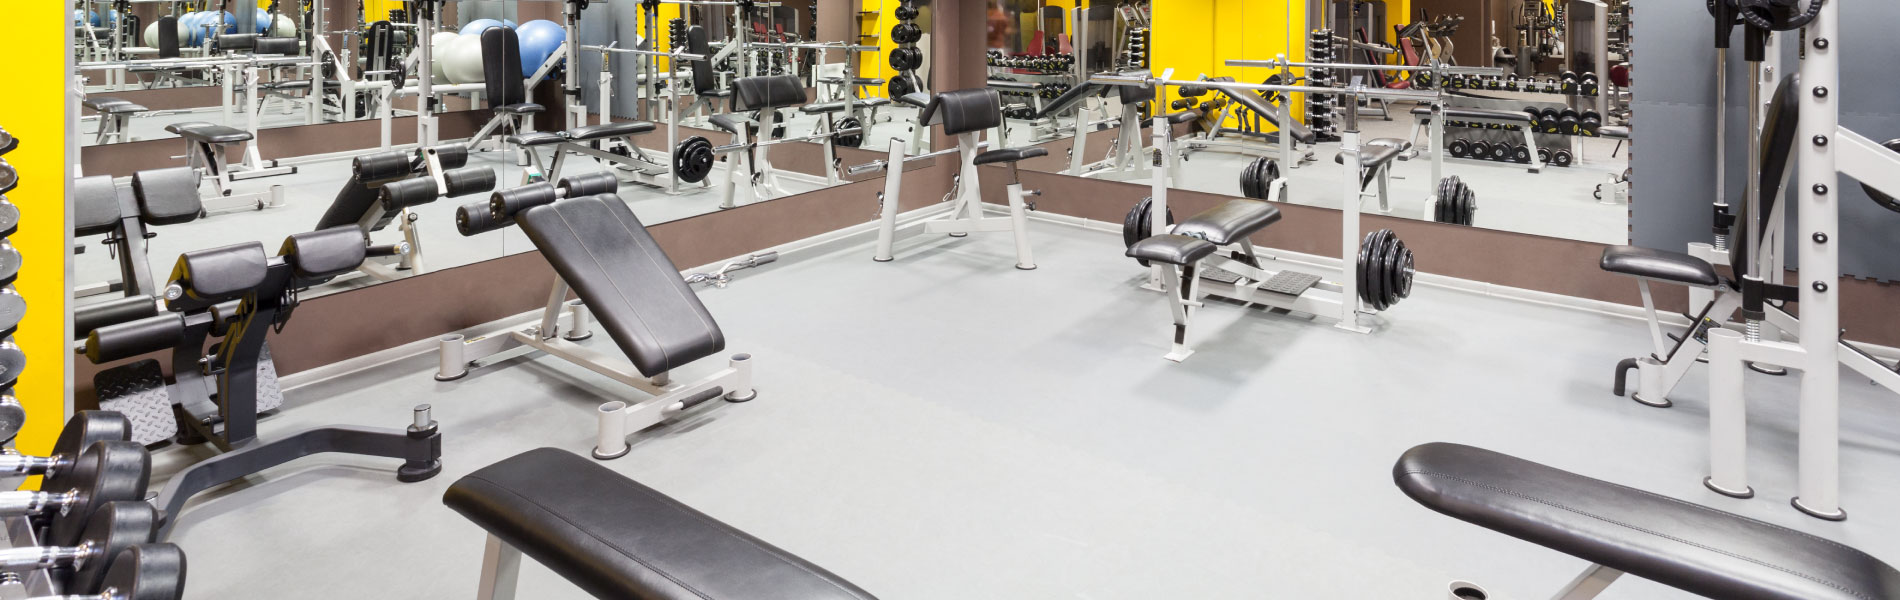 Business_Gains_Improving_the_Layout_of_your_Fitness_Centre_1900x600.jpg